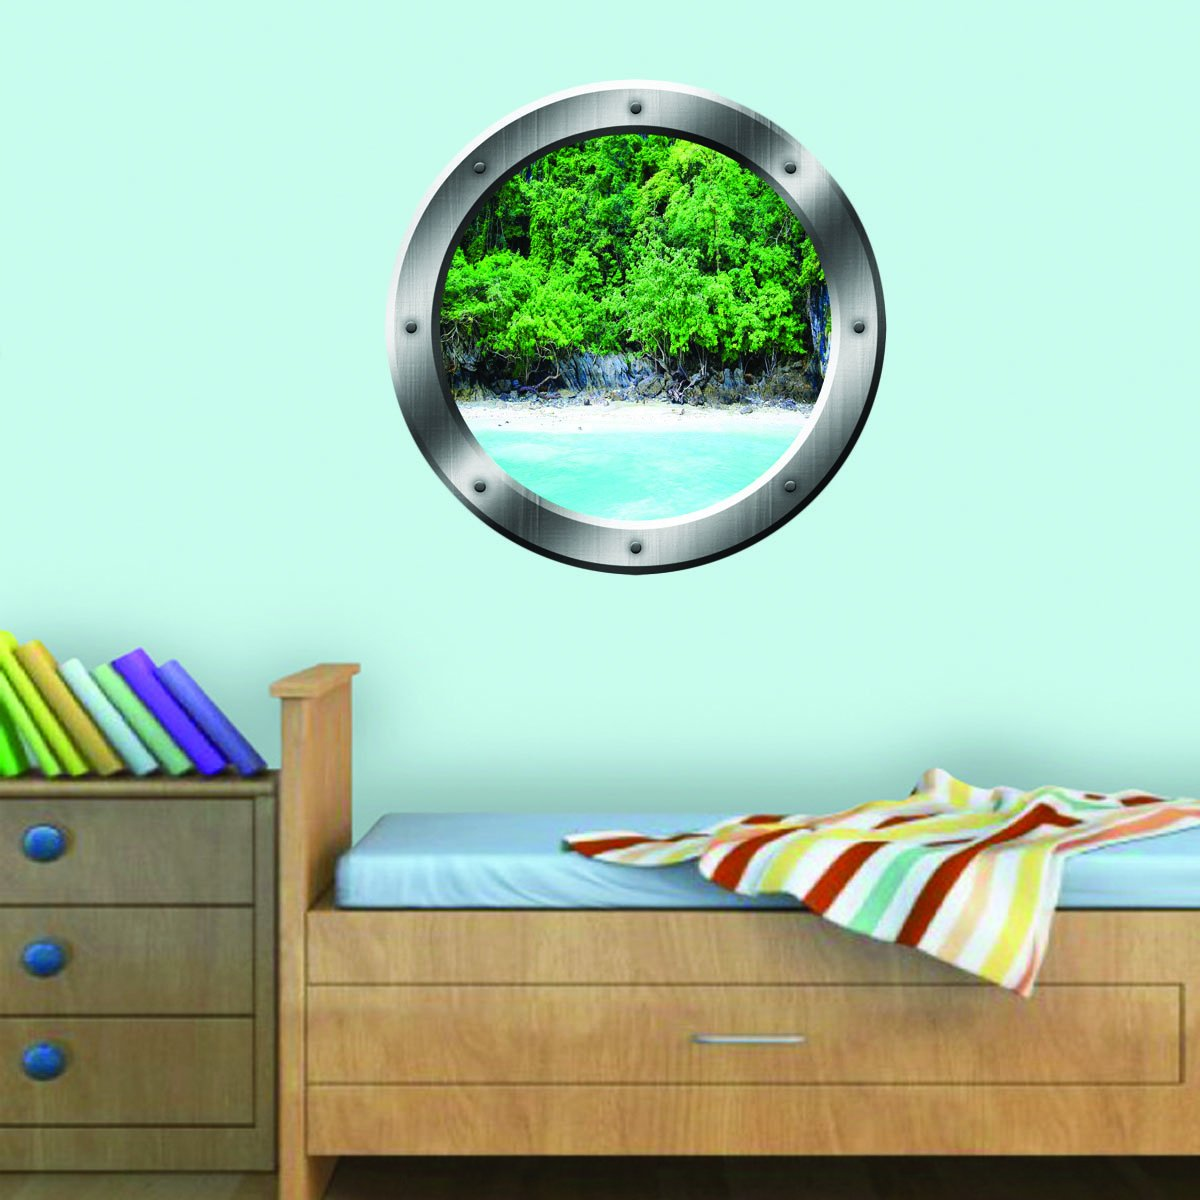 VWAQ Ocean Shoreline Silver Porthole Window View Peel and Stick Vinyl Wall Decal - SP15